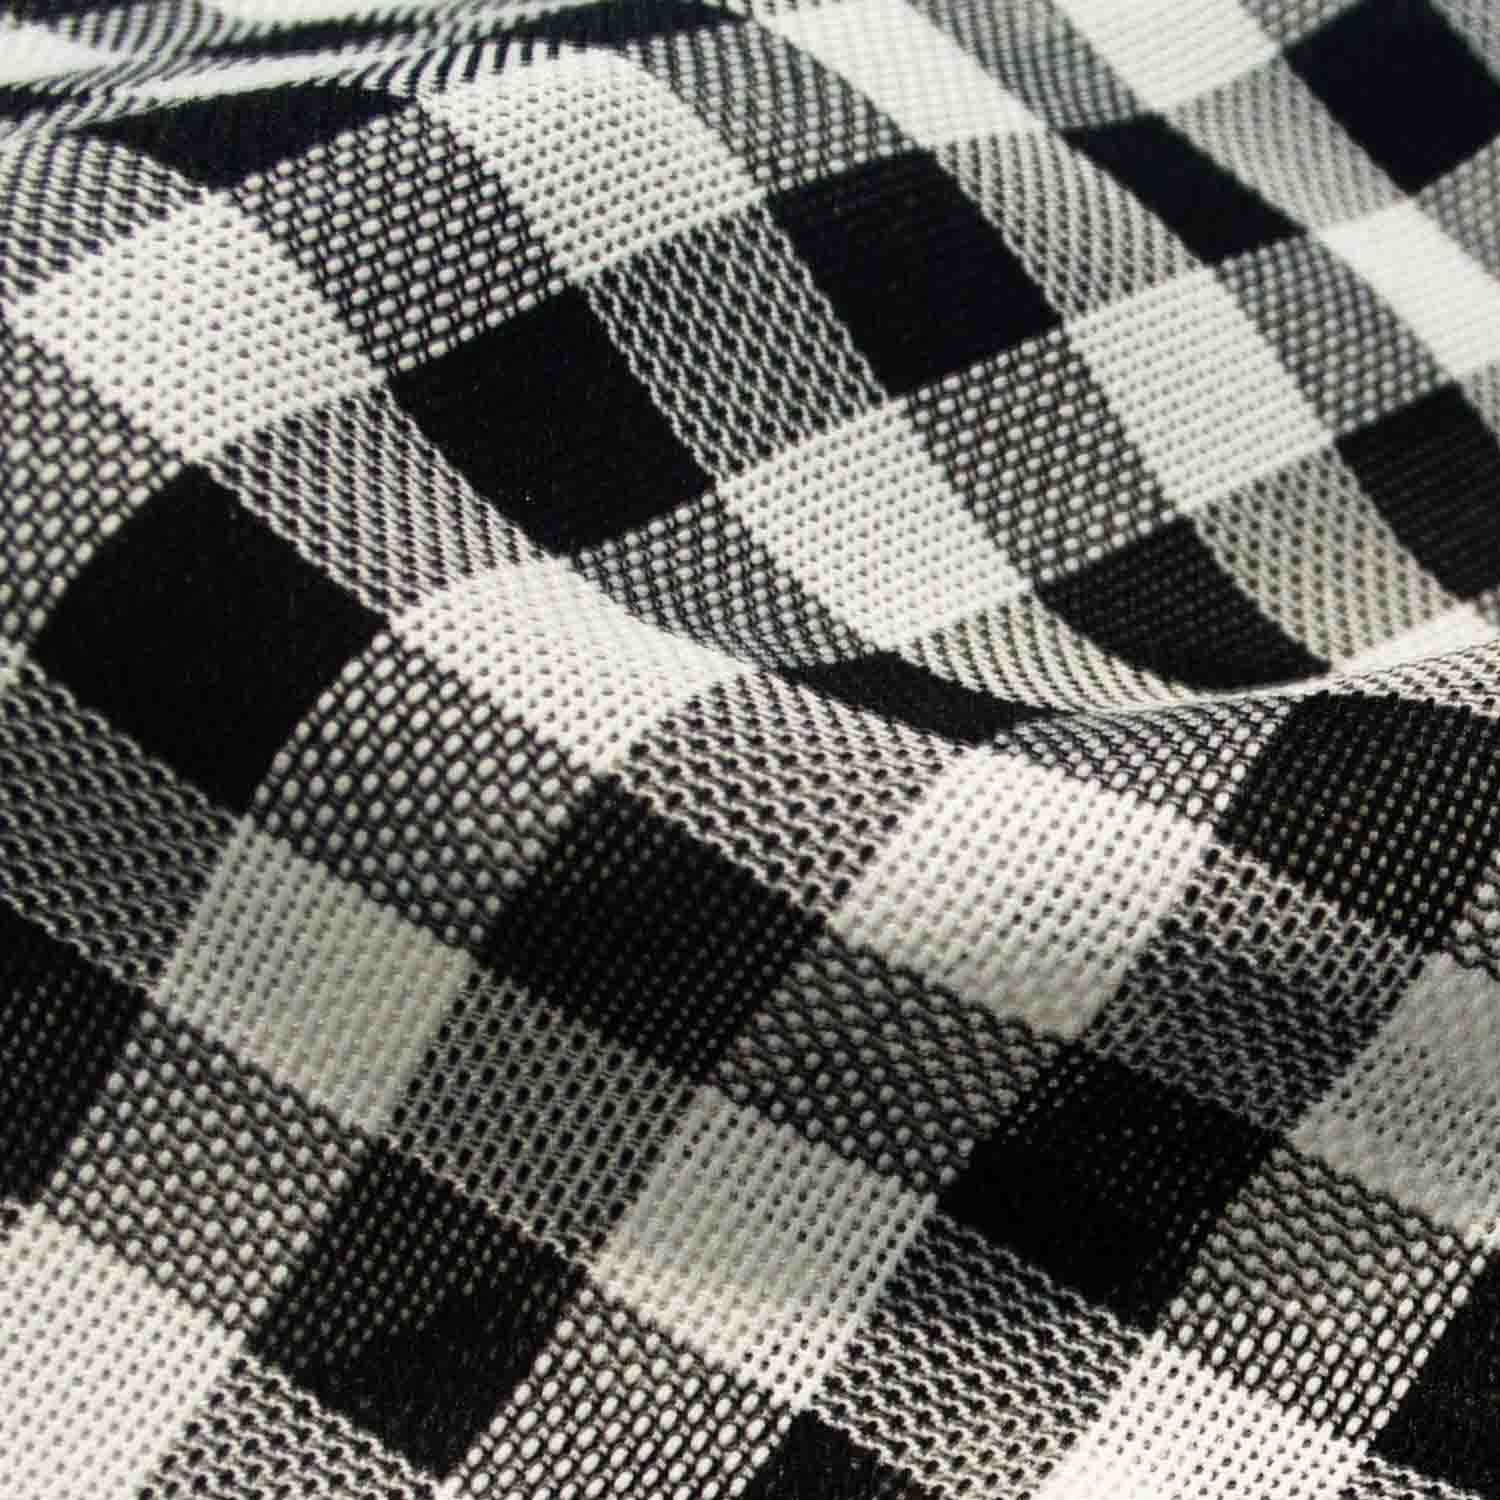 Polyester Fabric Yarn Dyed Fabric Chemical Fiber Woven Fabric for Woman Dress Skirt Coat Children Garment.